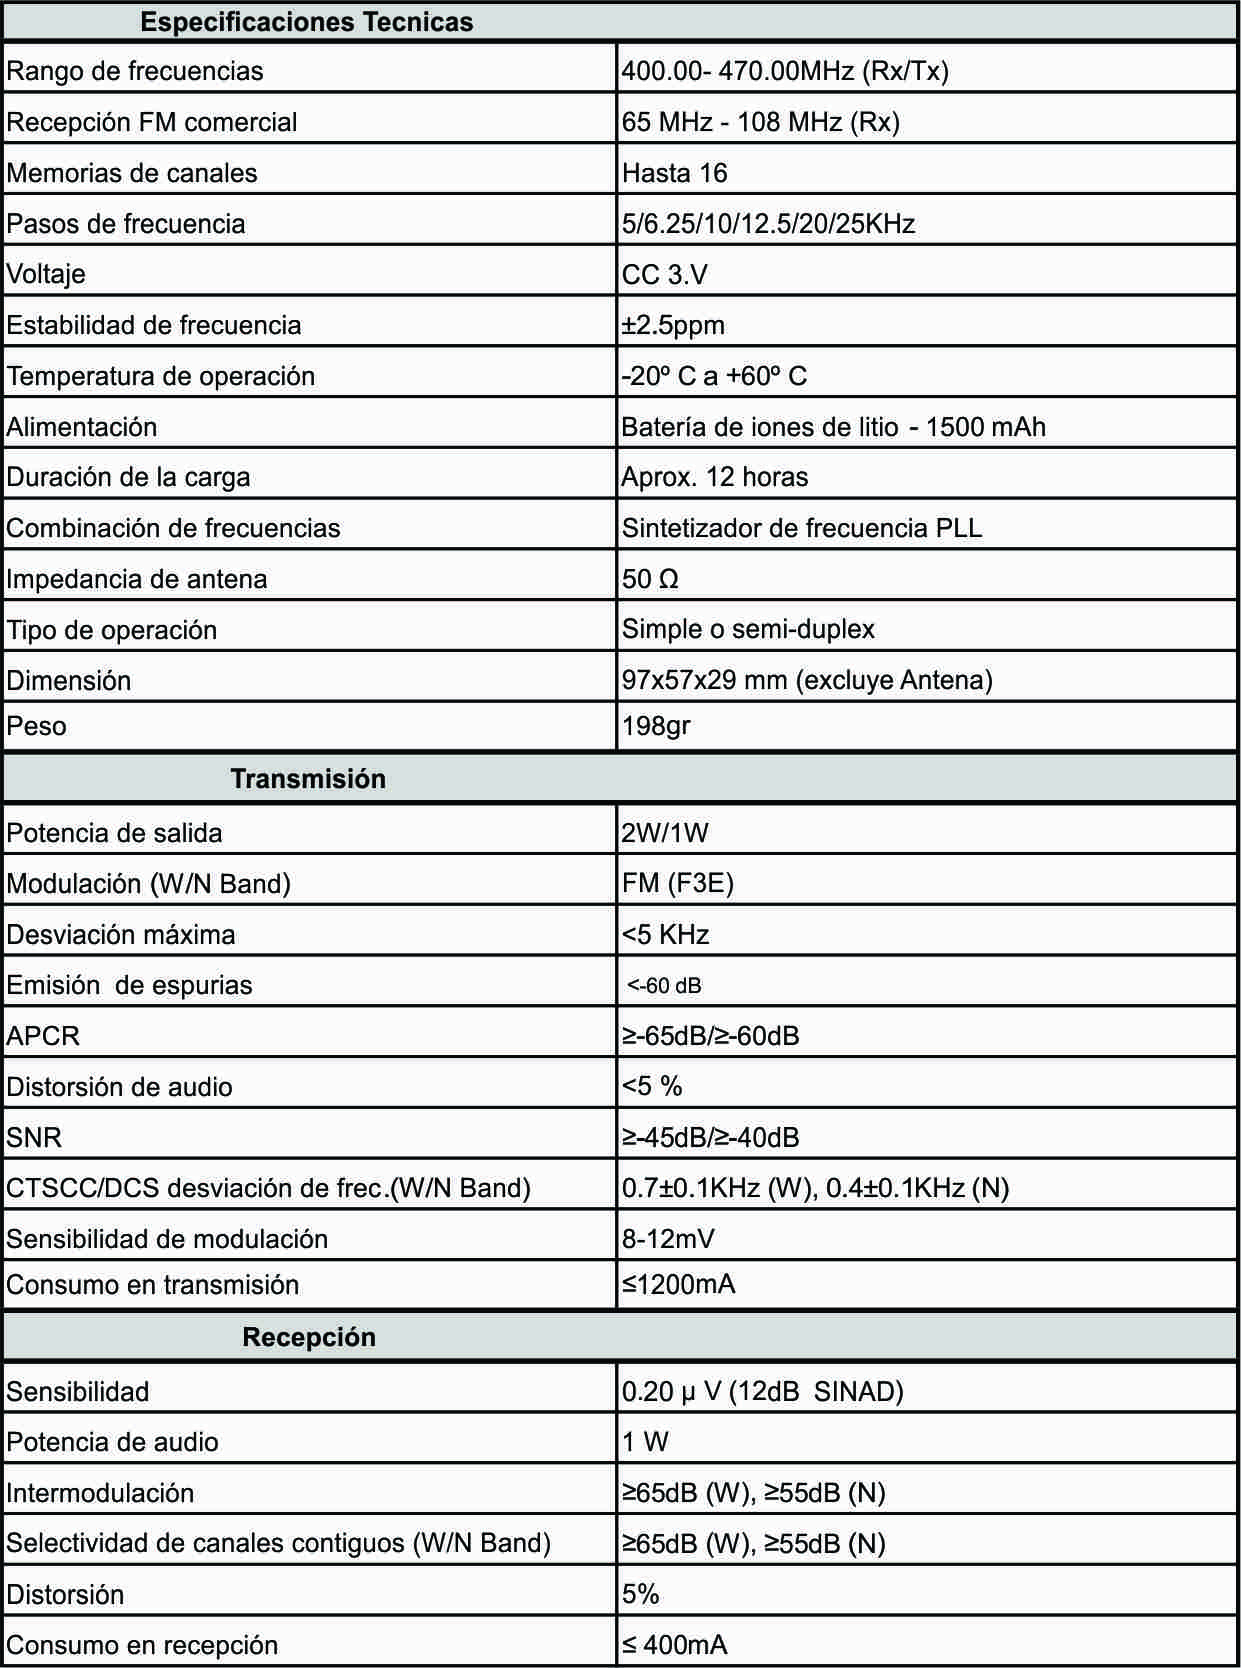 Tabla especificaciones Tecnicas